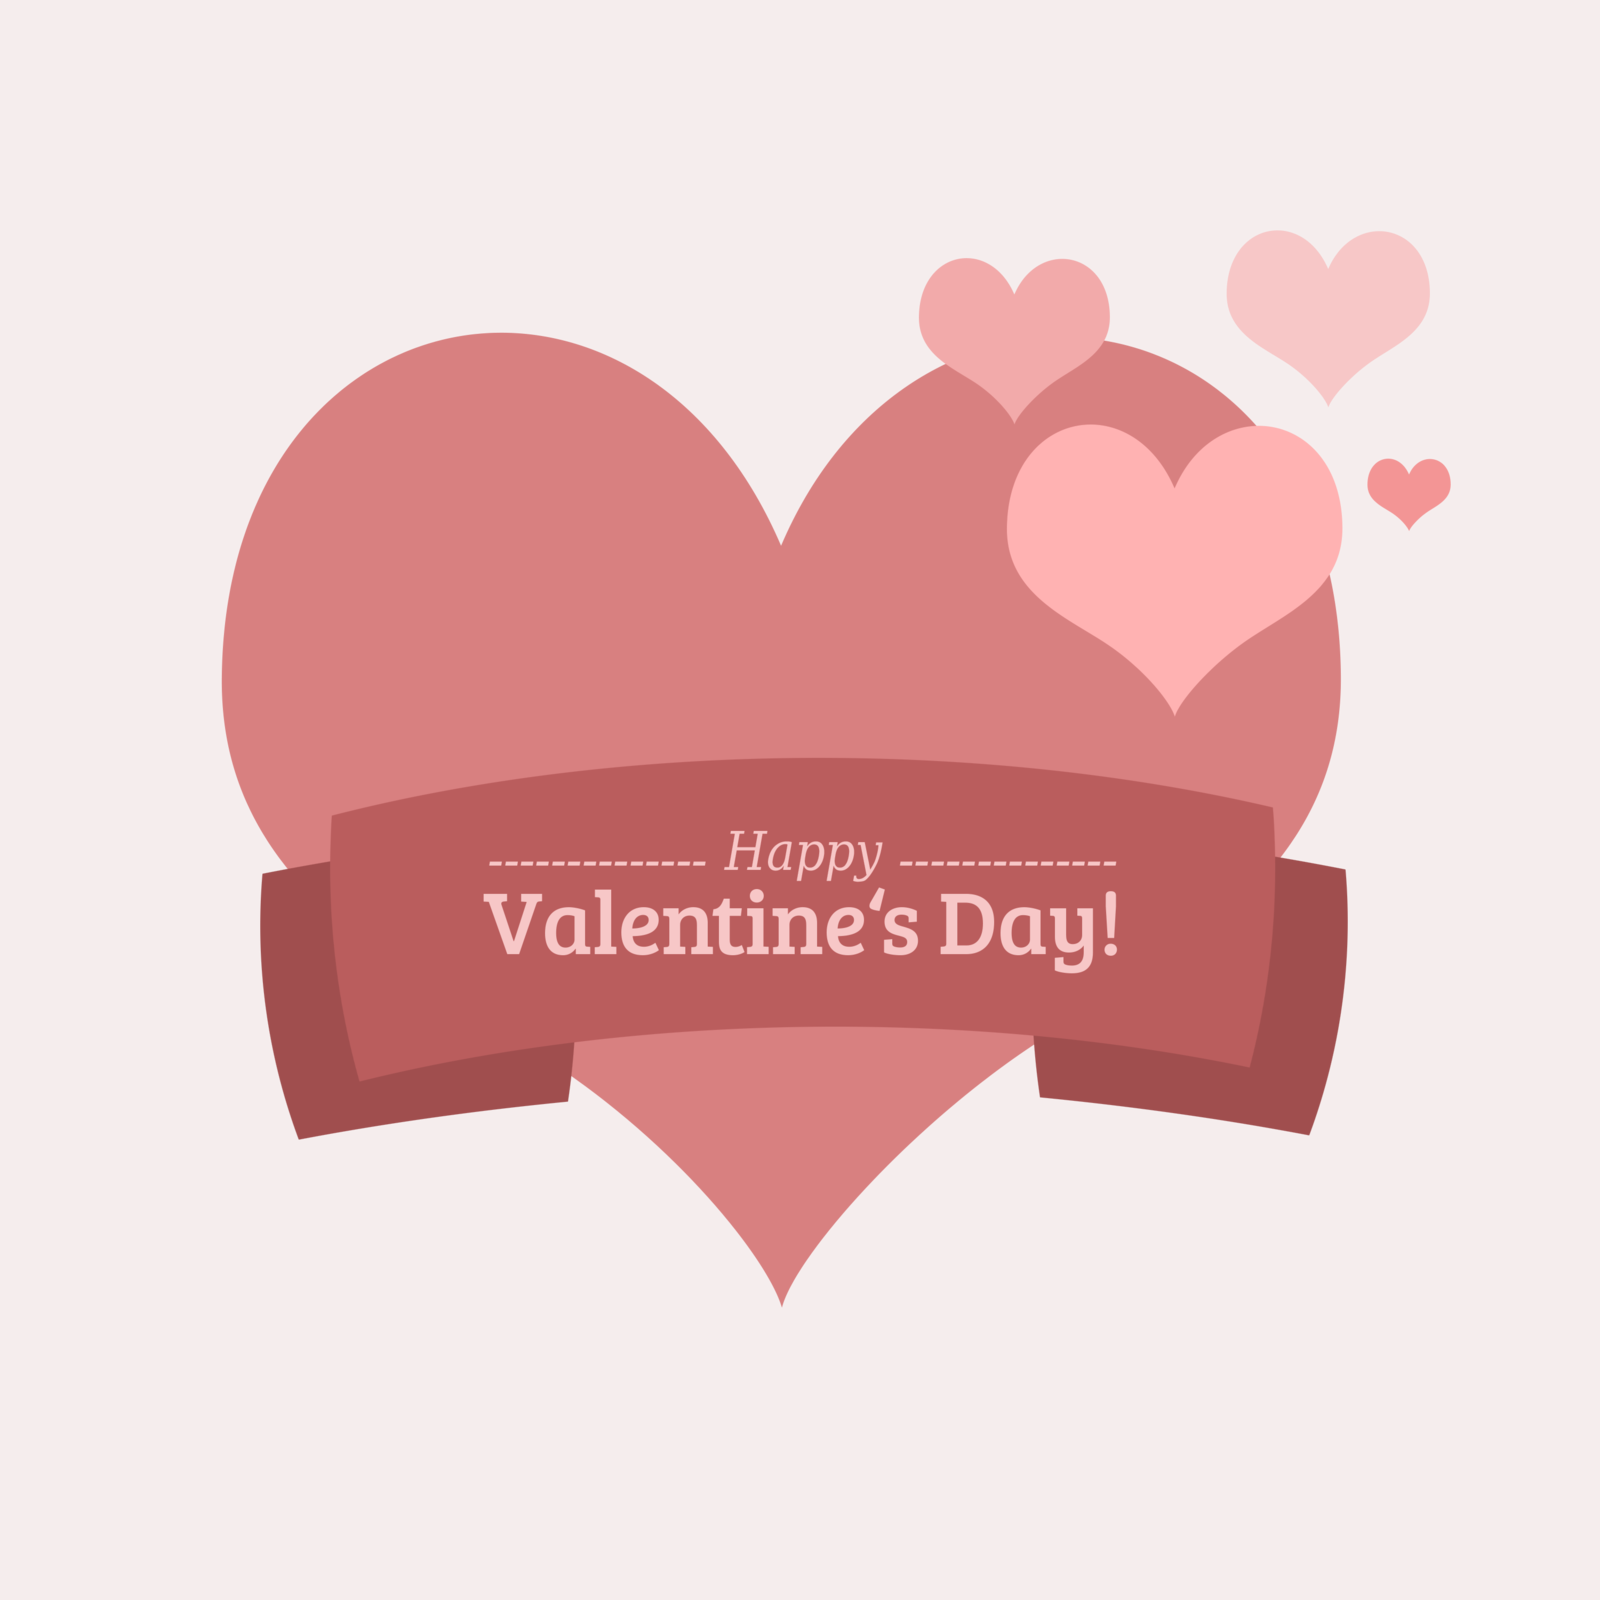 Sweet heart clipart svg library download Sweet ,heart,clipart,valentine,day,saint,valentin,png,cœur,amour ... svg library download